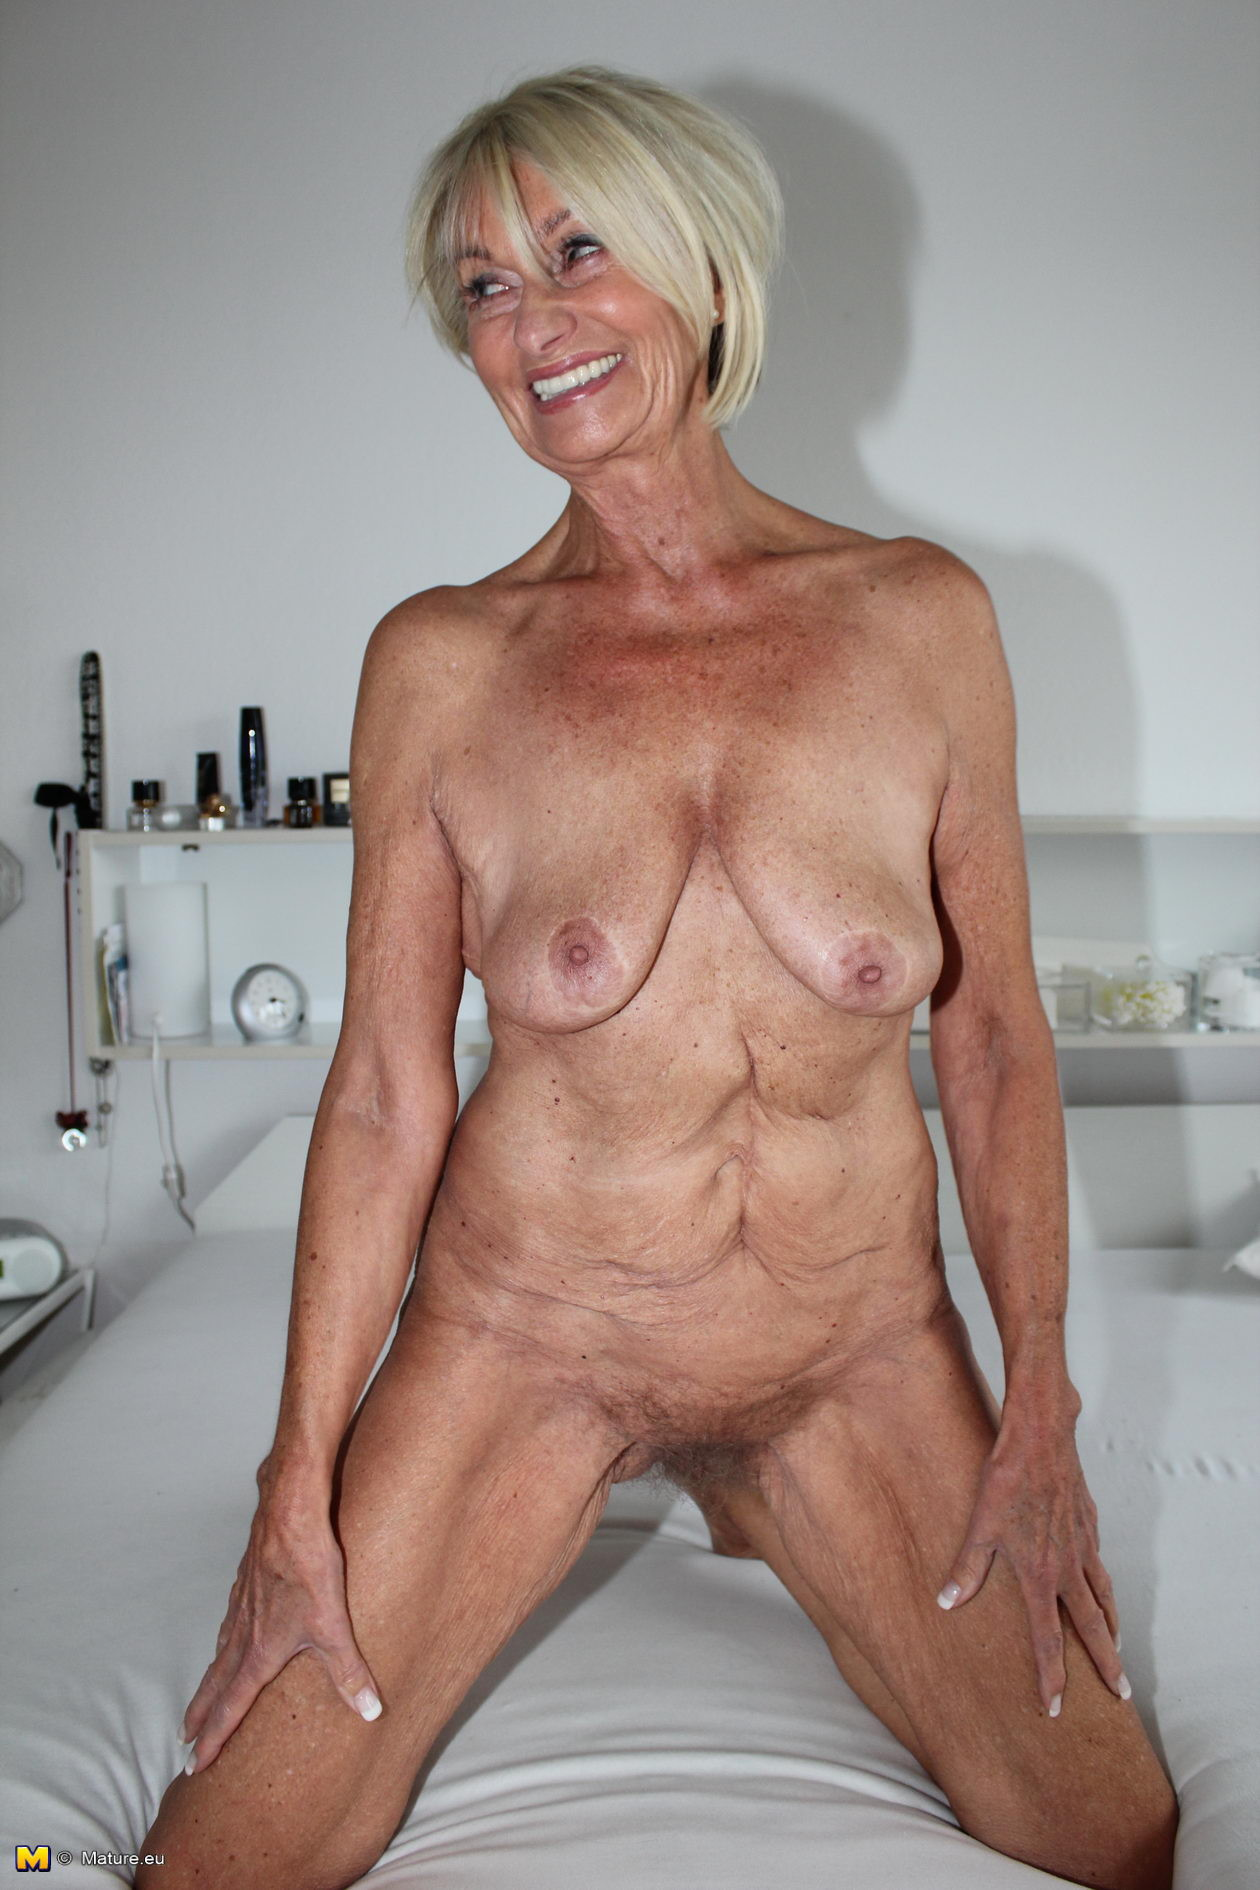 Nude wrinkled old females, hot womens getting fucked in vagina